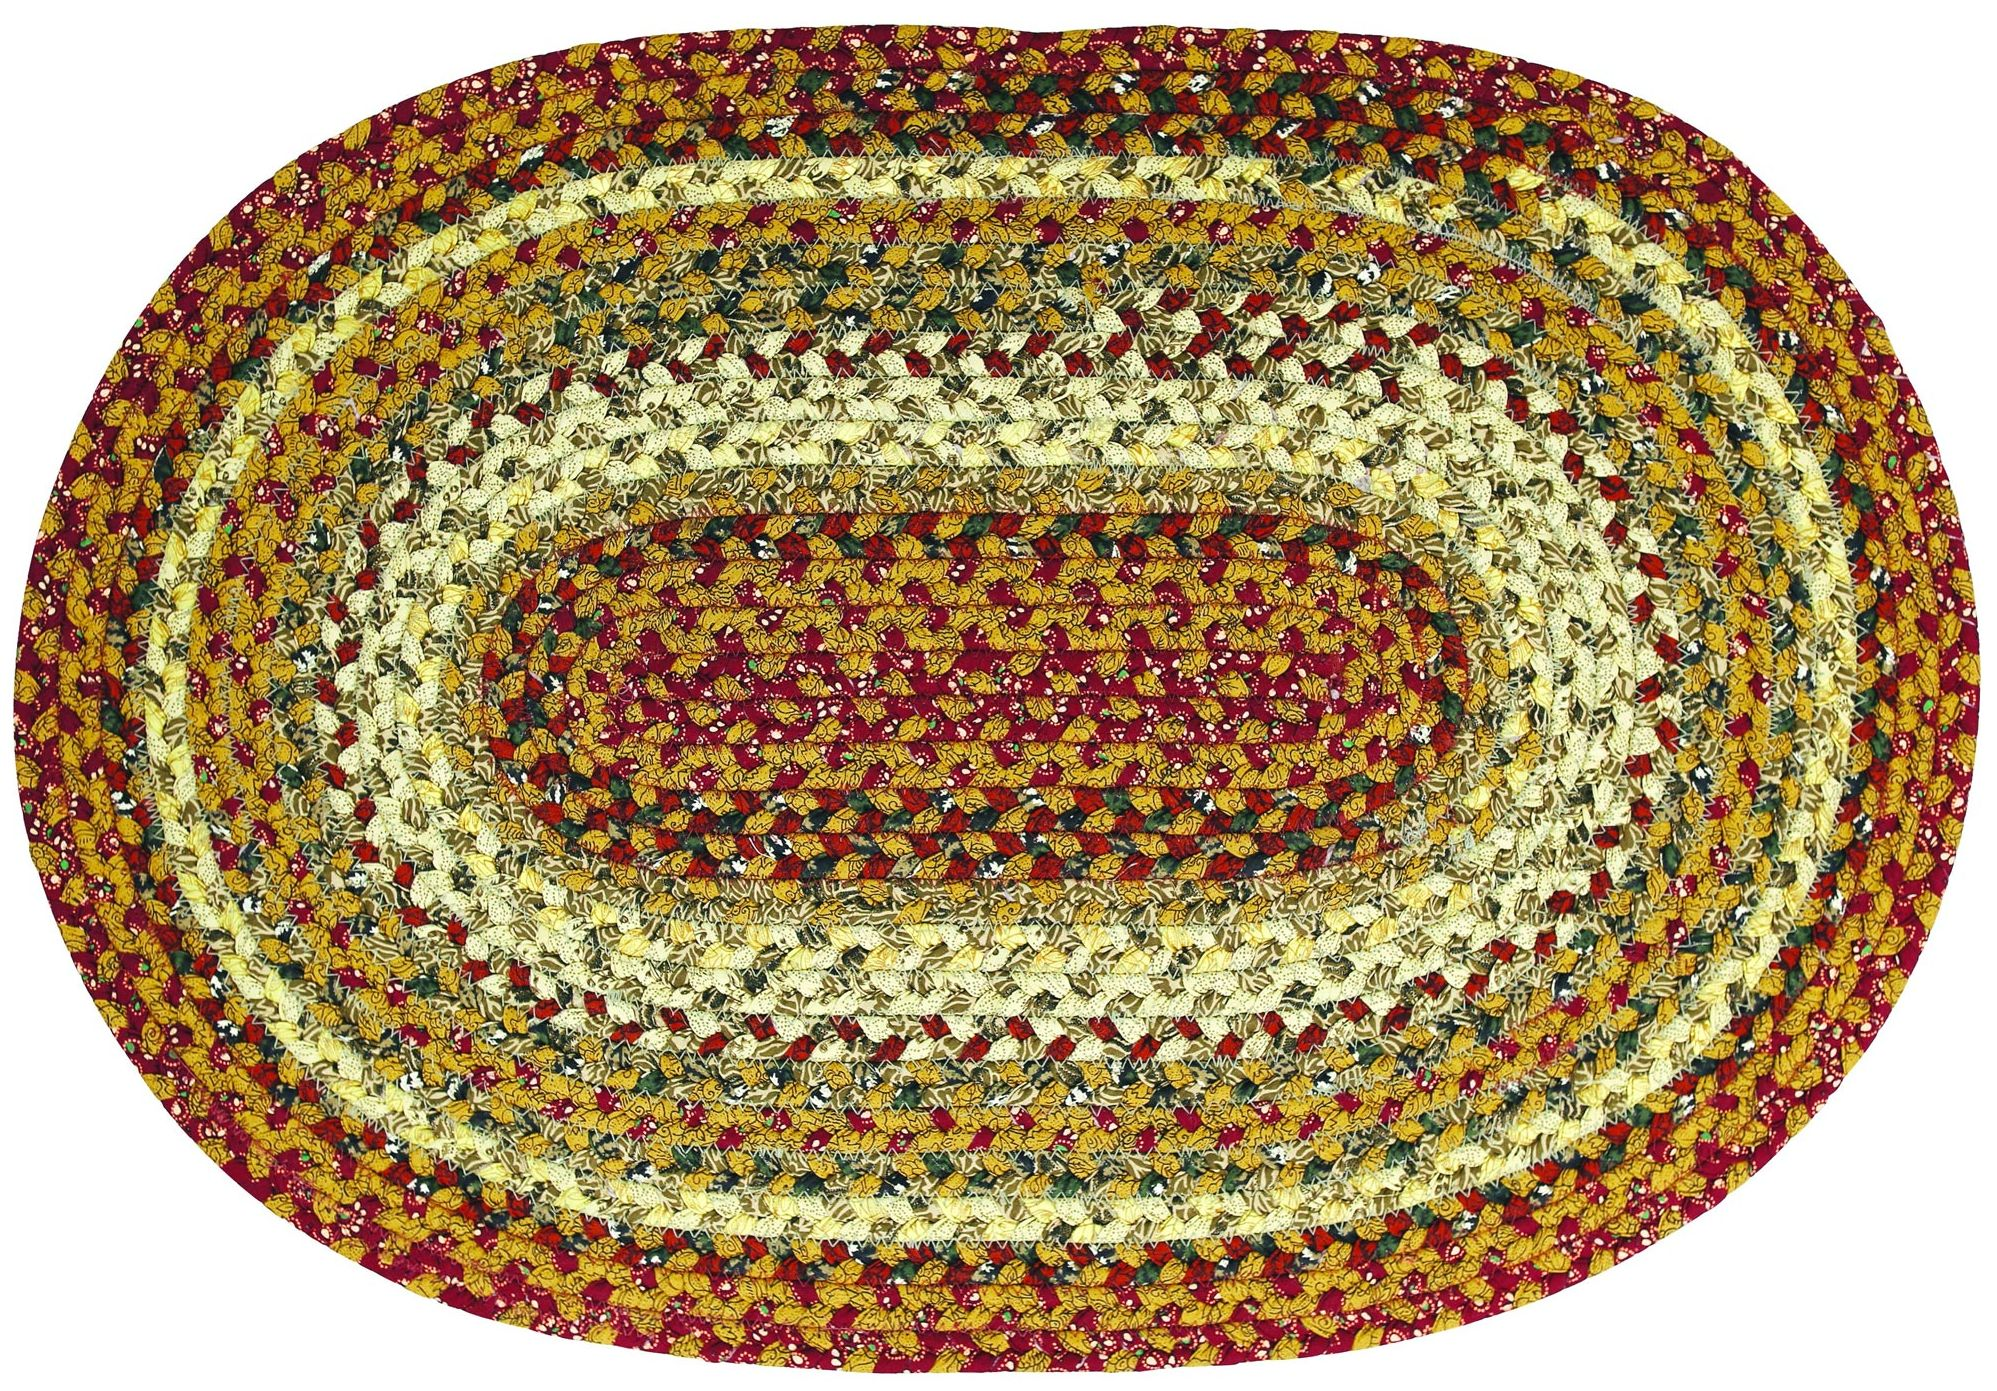 HSD-Pumpkin-Pie-Oval-Cotton-Braided-Rug-LRG